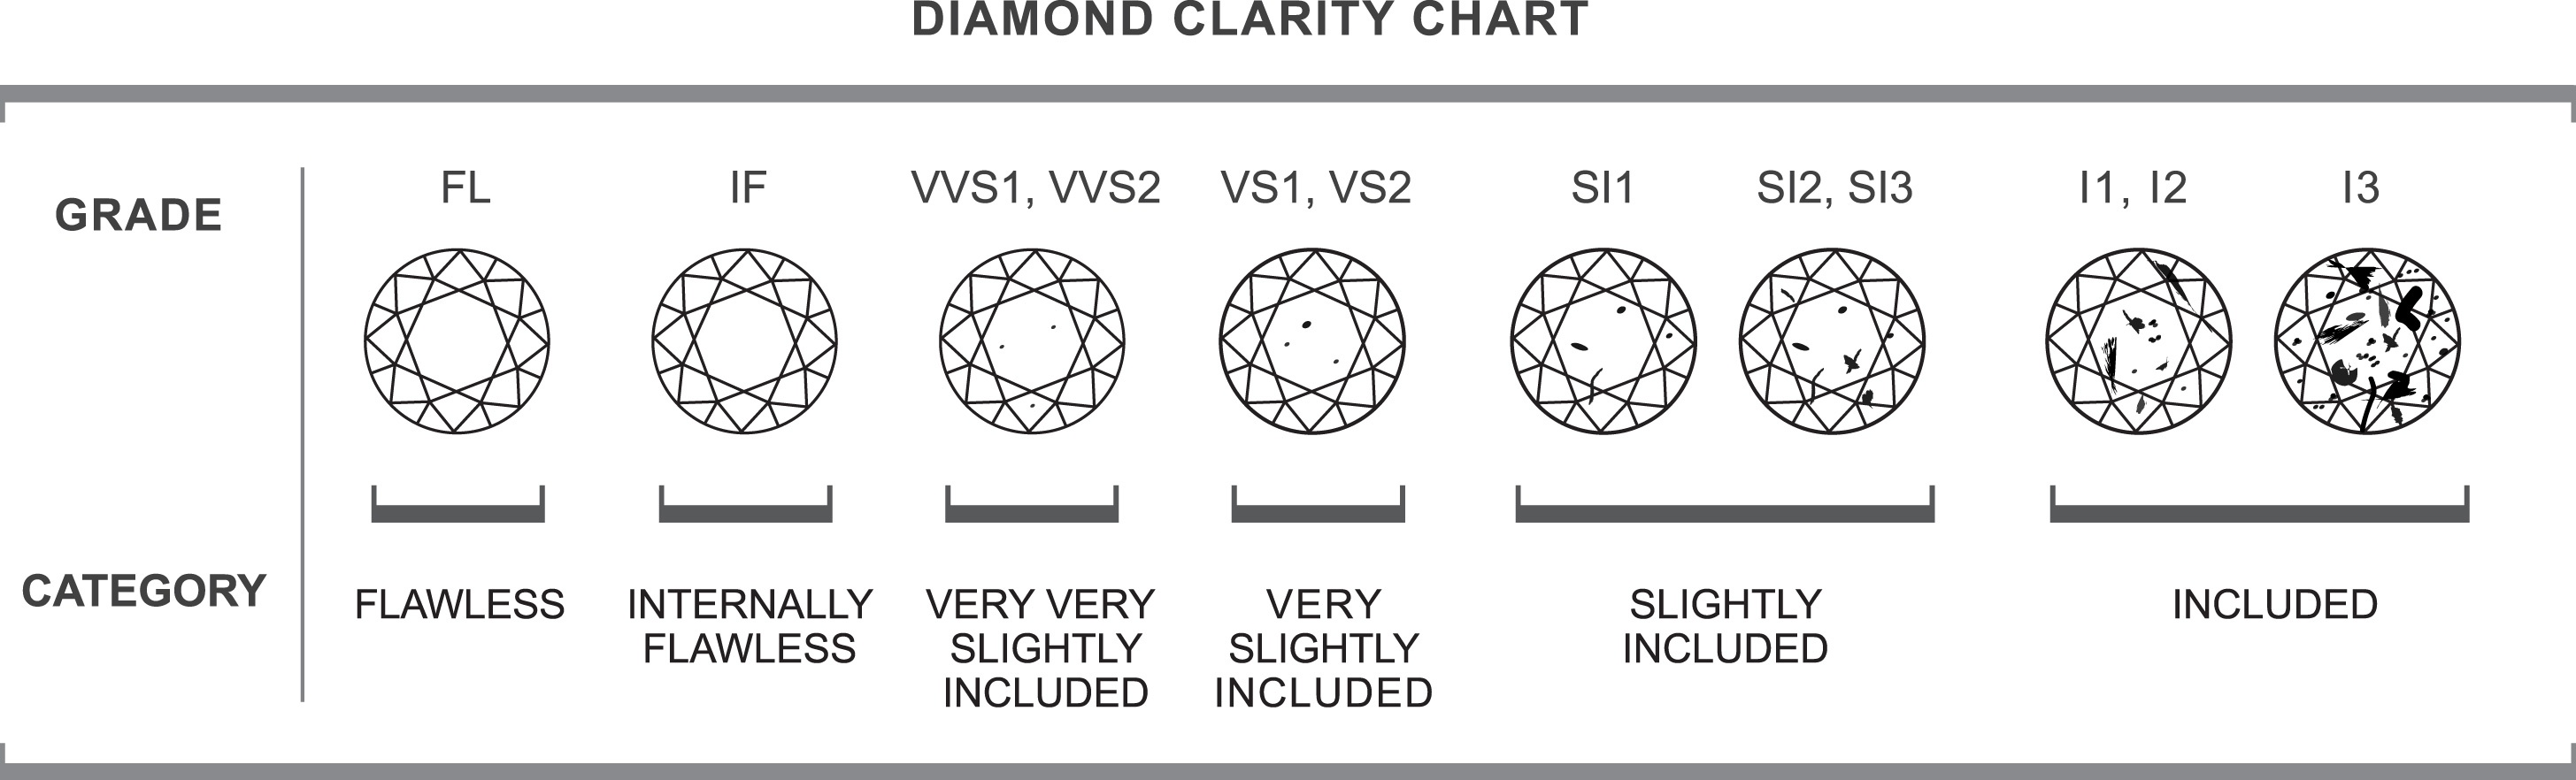 DiamondClarity_Clarity vs. Cut: Which Is More Important?